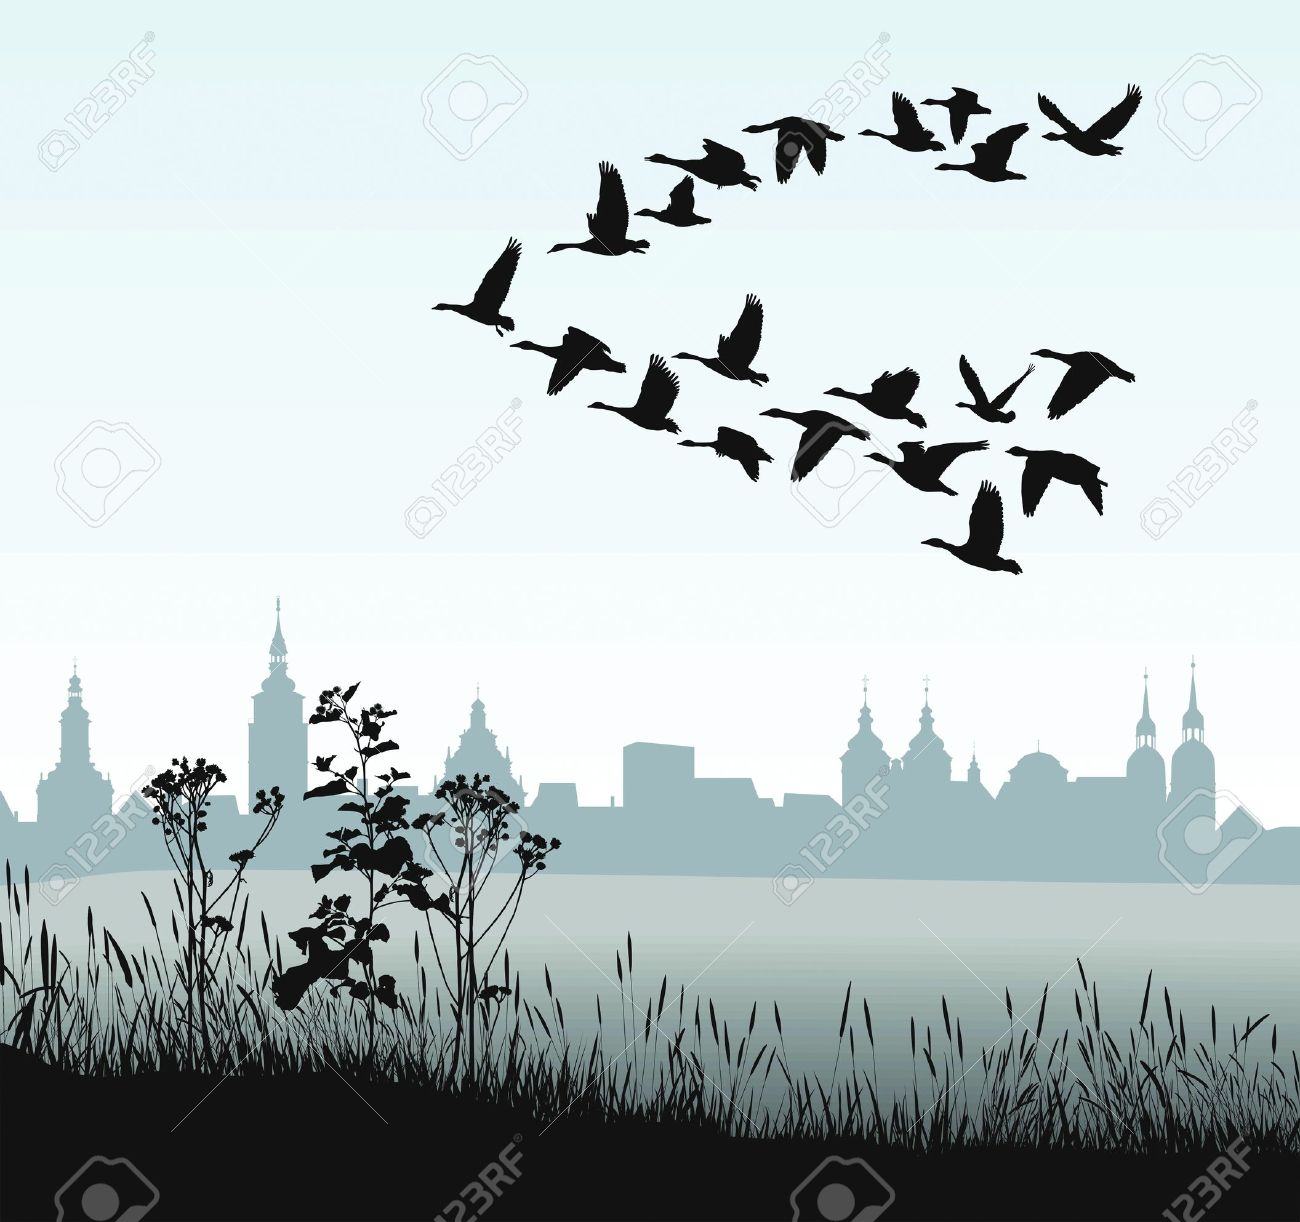 vector illustration of migratory wild goose silhouette of the historic town - 13284917